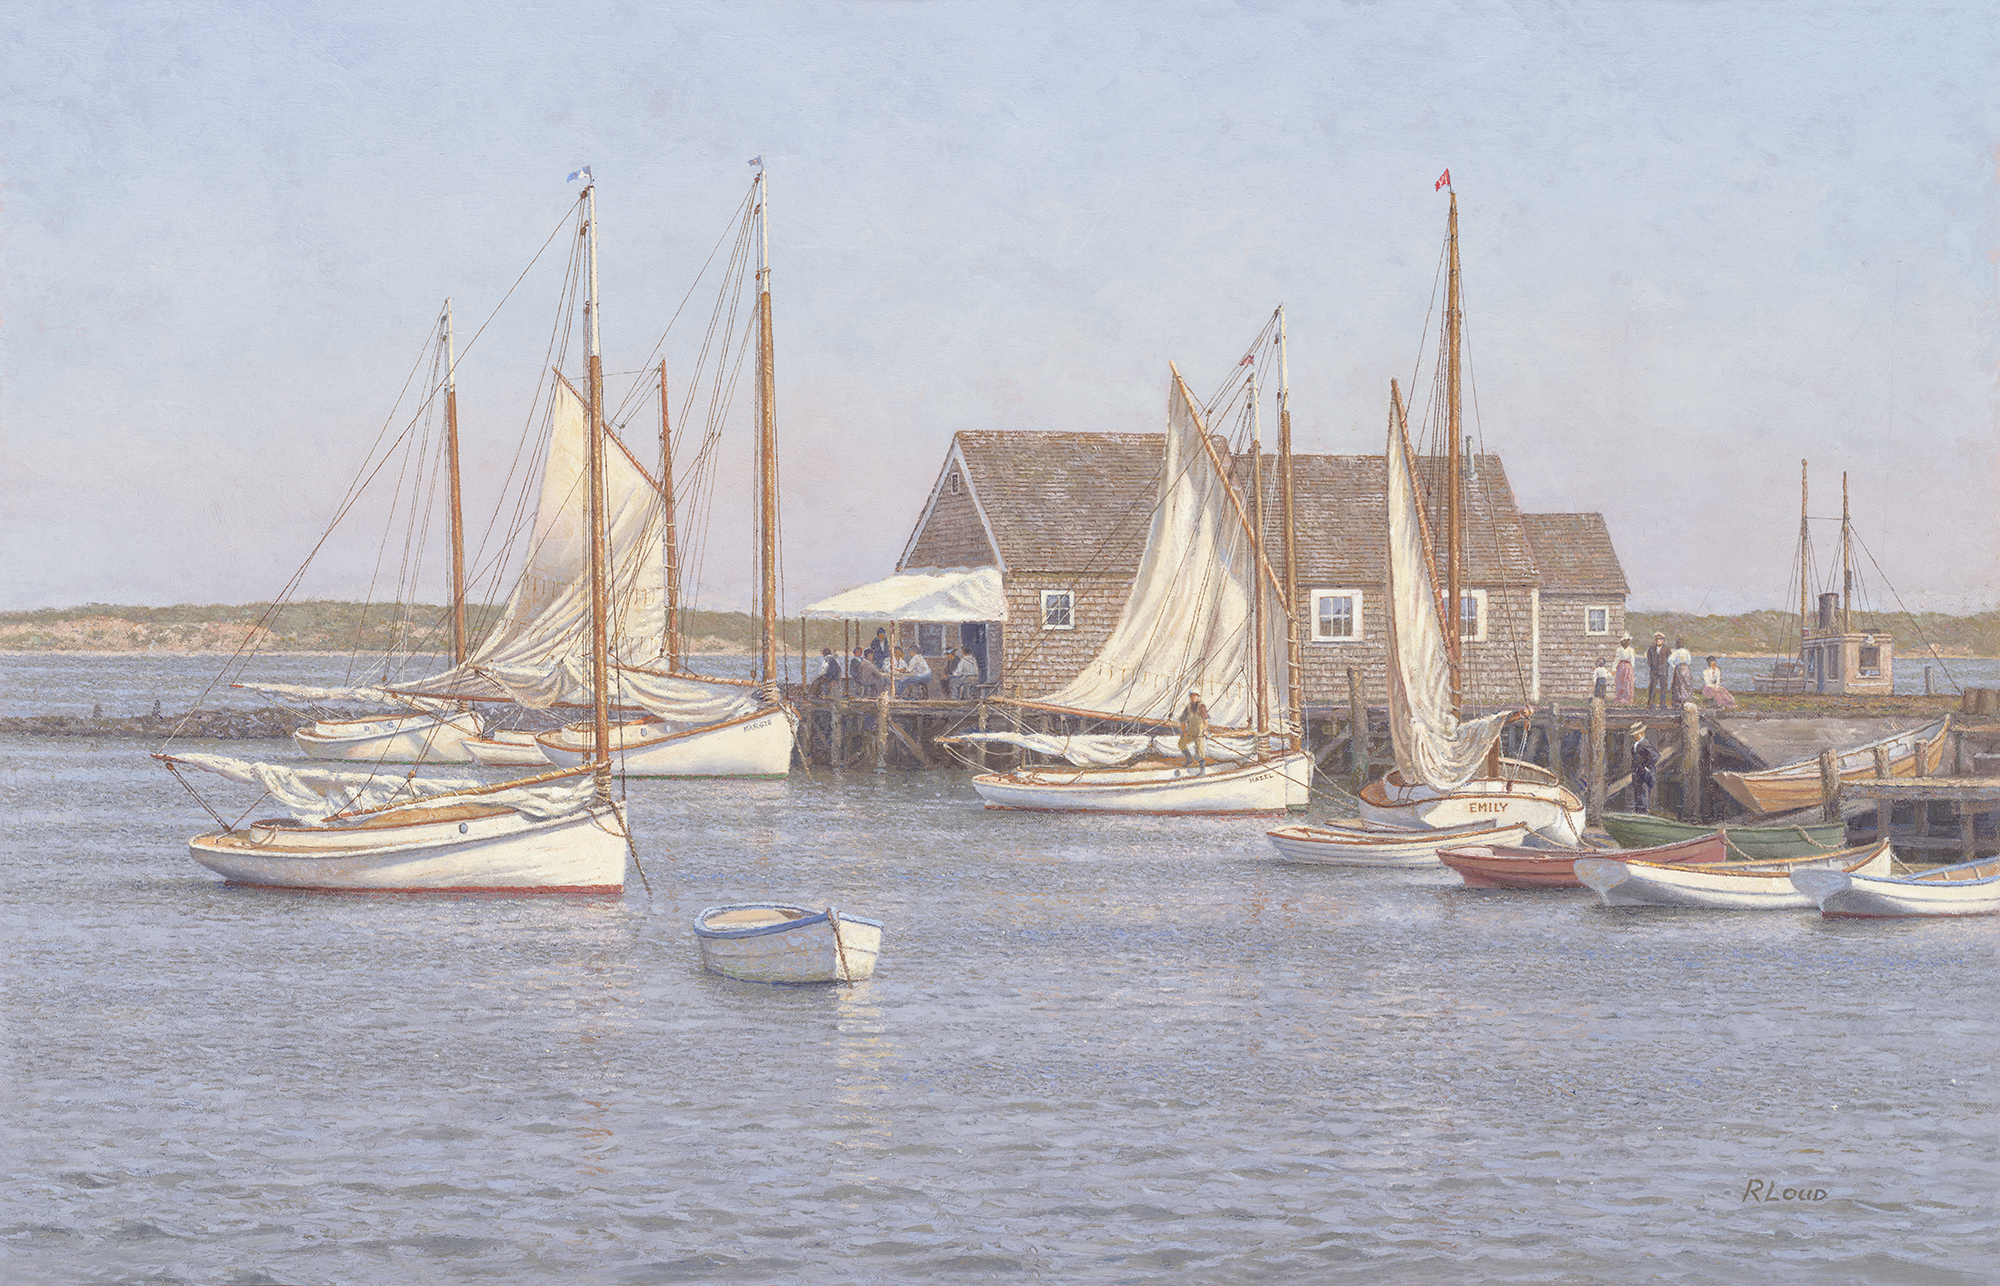 Drying The Sails, North Wharf, Nantucket C. 1900